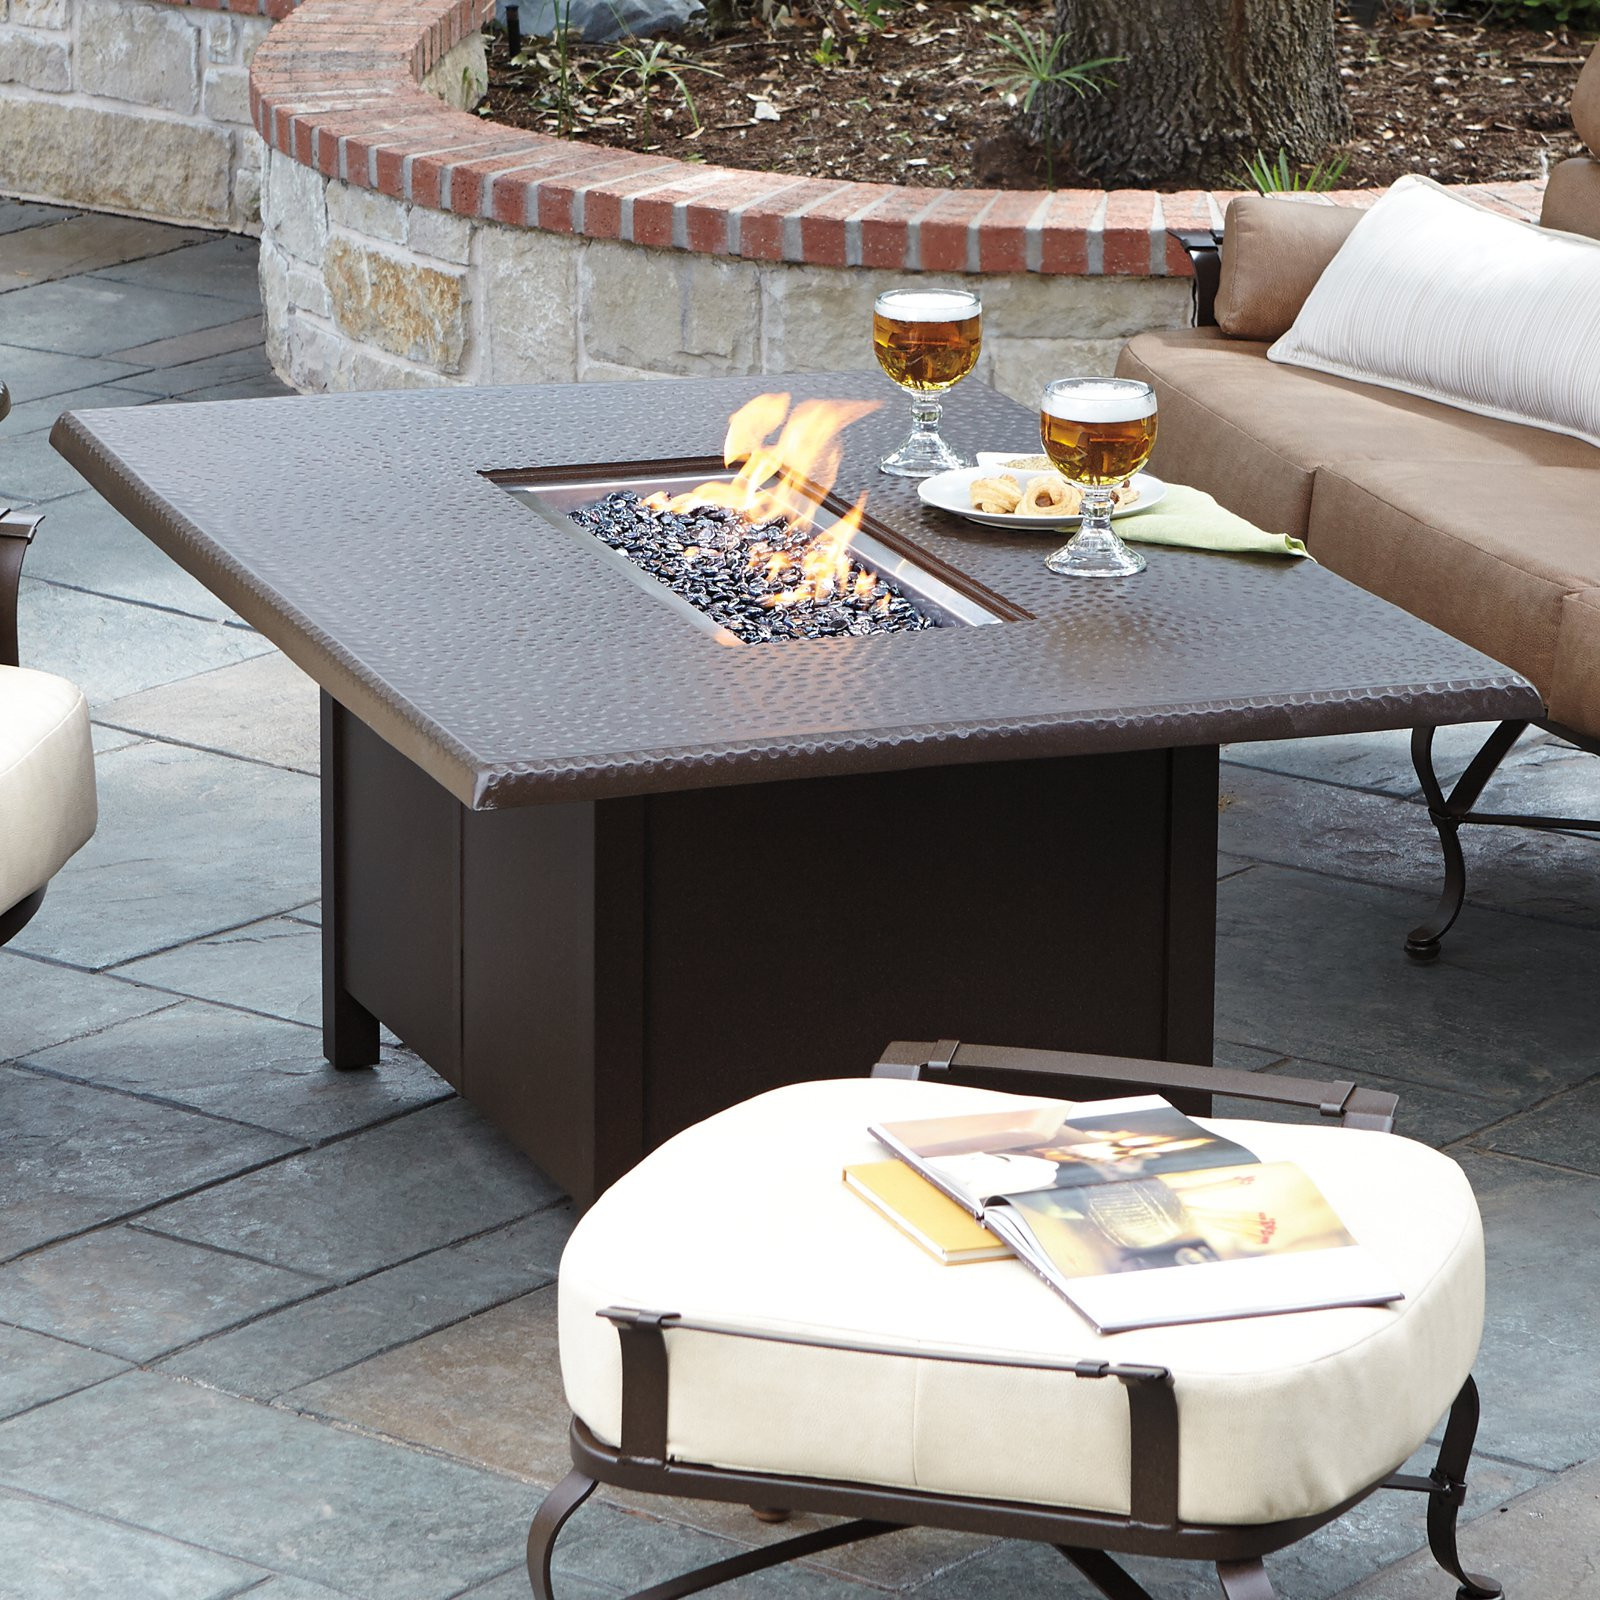 Best ideas about Fire Pit Dining Table . Save or Pin Woodard Hammered 42 x 60 Rectangular Fire Pit Table Now.